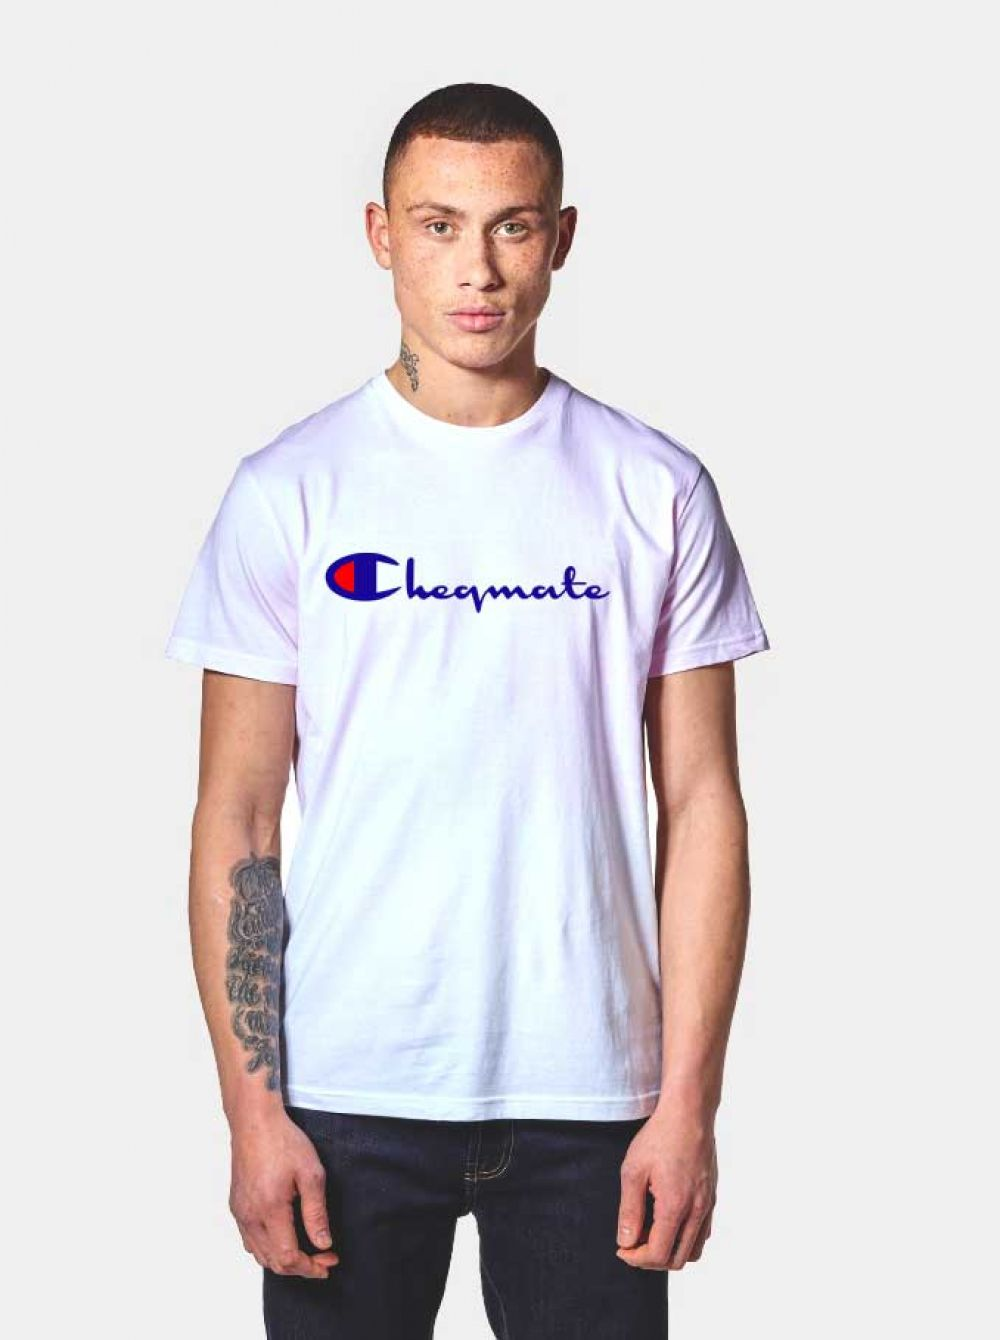 c0313f32 Cheqmate Champion Logo Parody T Shirt $ 14.50 #Tee #Hype #Outfits #Outfit # Hypebeast #fashion #shirt #Tees #Tops #Teen